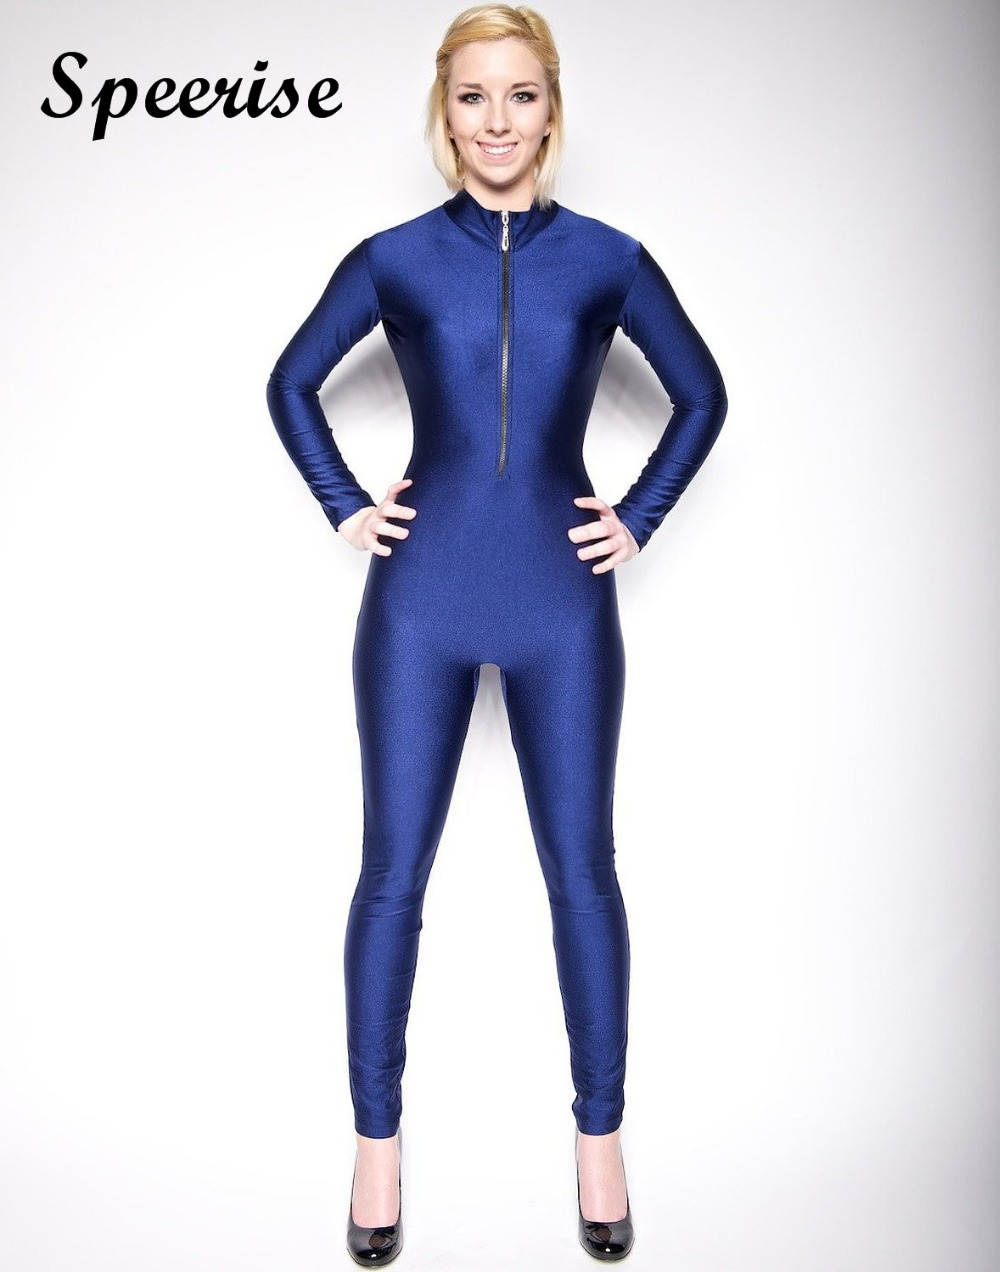 Speerise Adult Lycra Spandex Long Sleeve Dancewear Women Turtleneck Unitard Bodysuit Full Length Front Zipper Suits